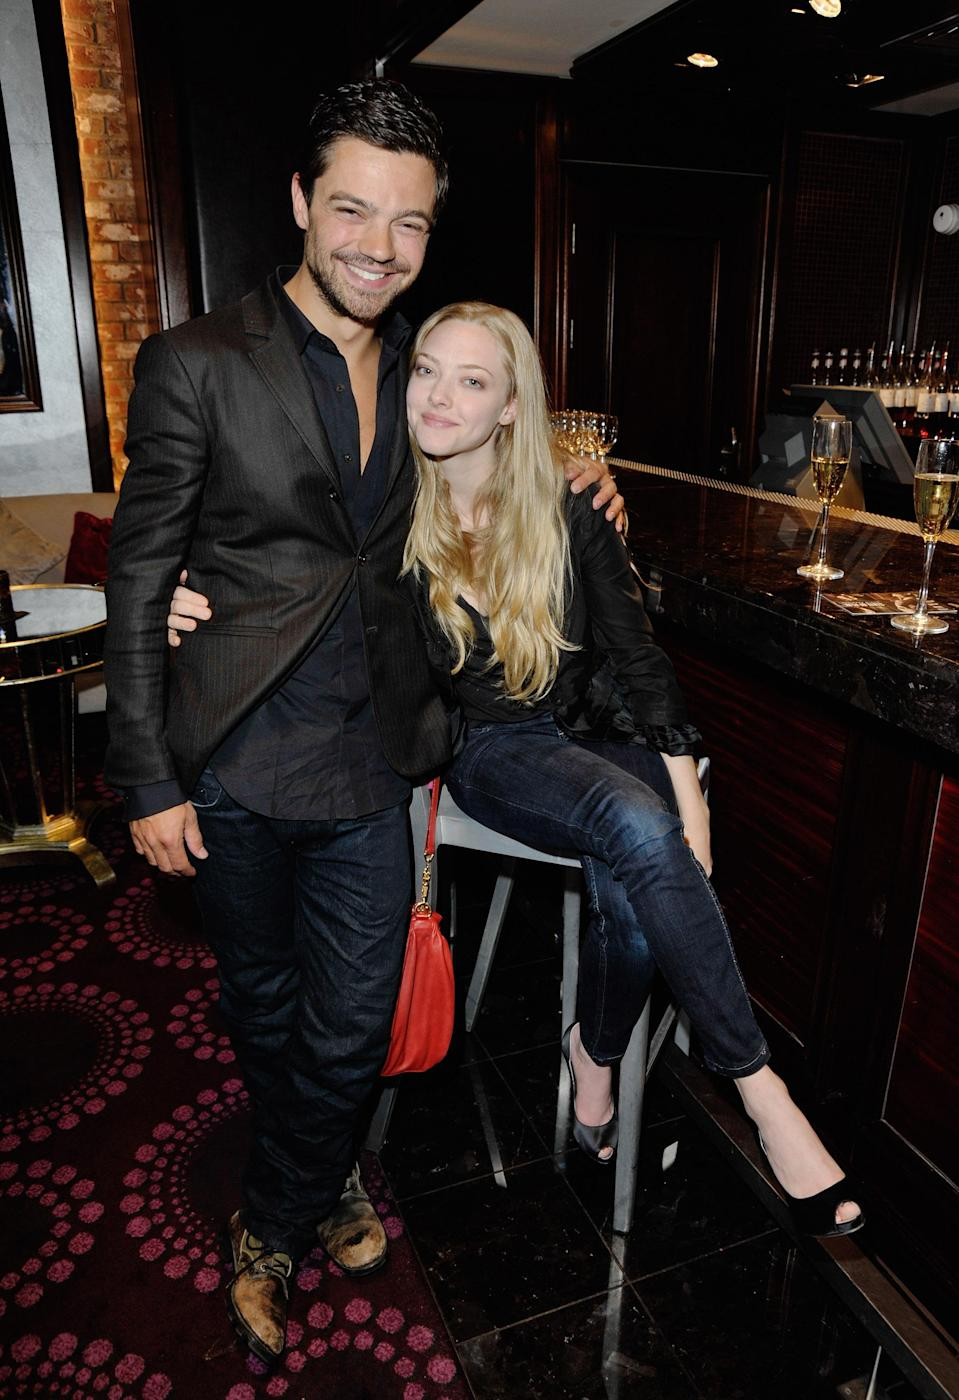 Dominic Cooper and Amanda Seyfried had a date night at a London movie premiere on April 21, 2009. (Photo: Jon Furniss/WireImage)